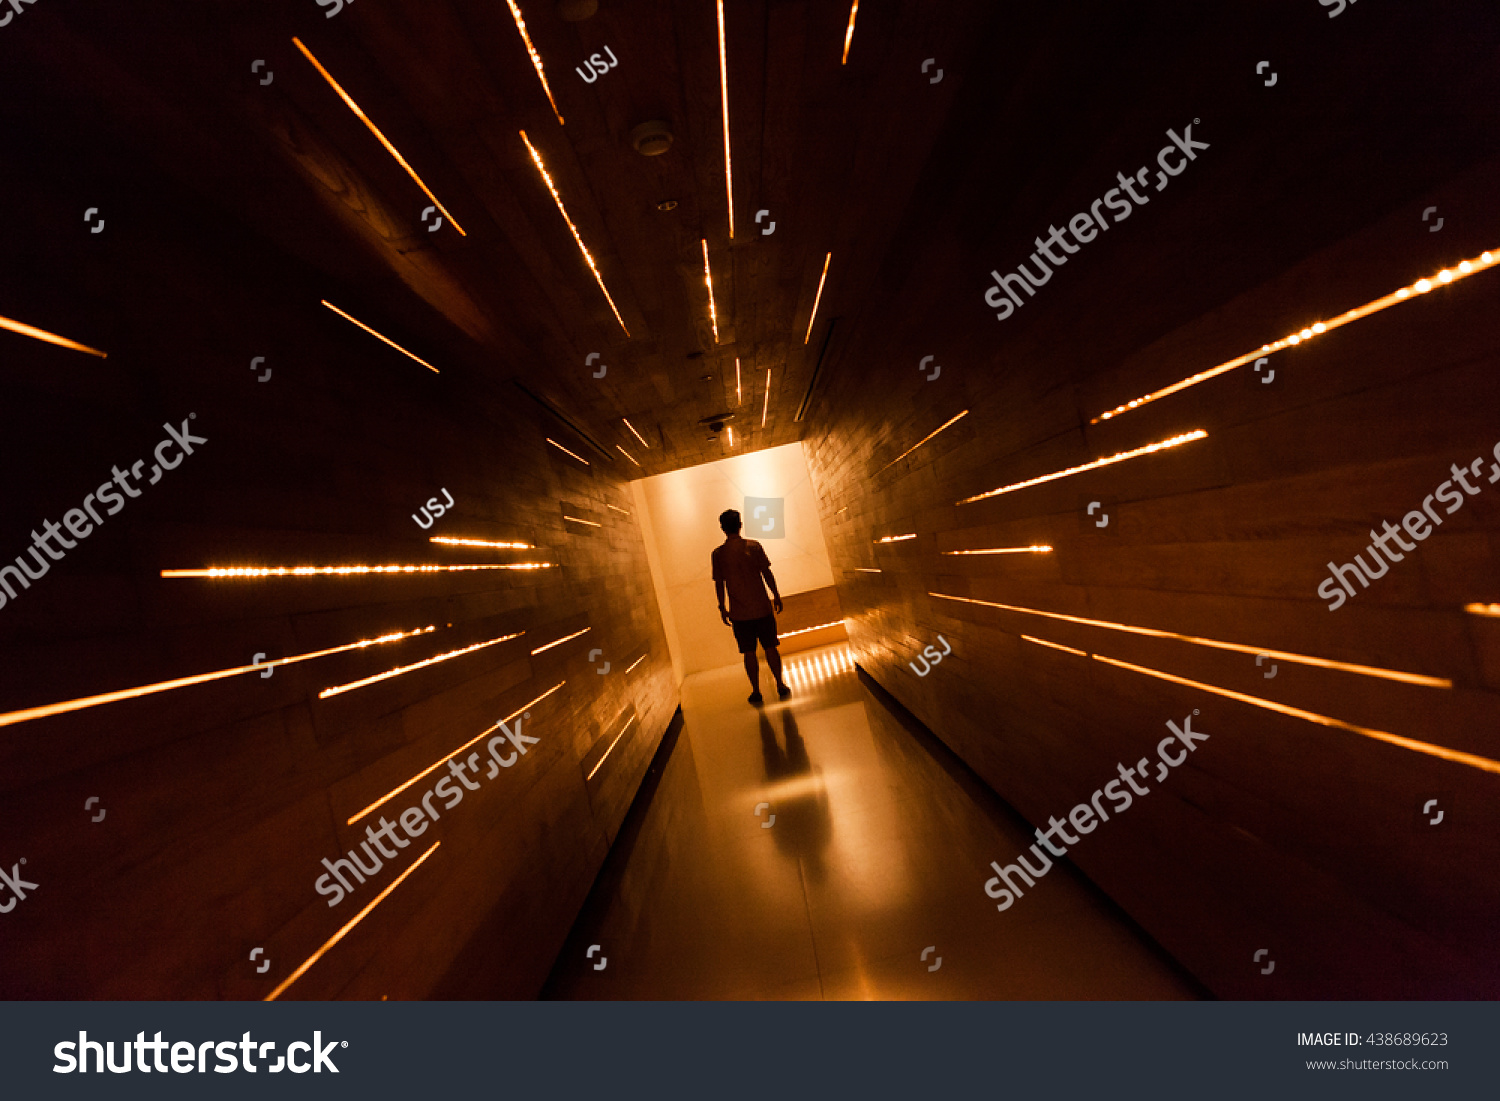 Silhouette human in the center of beautiful corridor design. #438689623